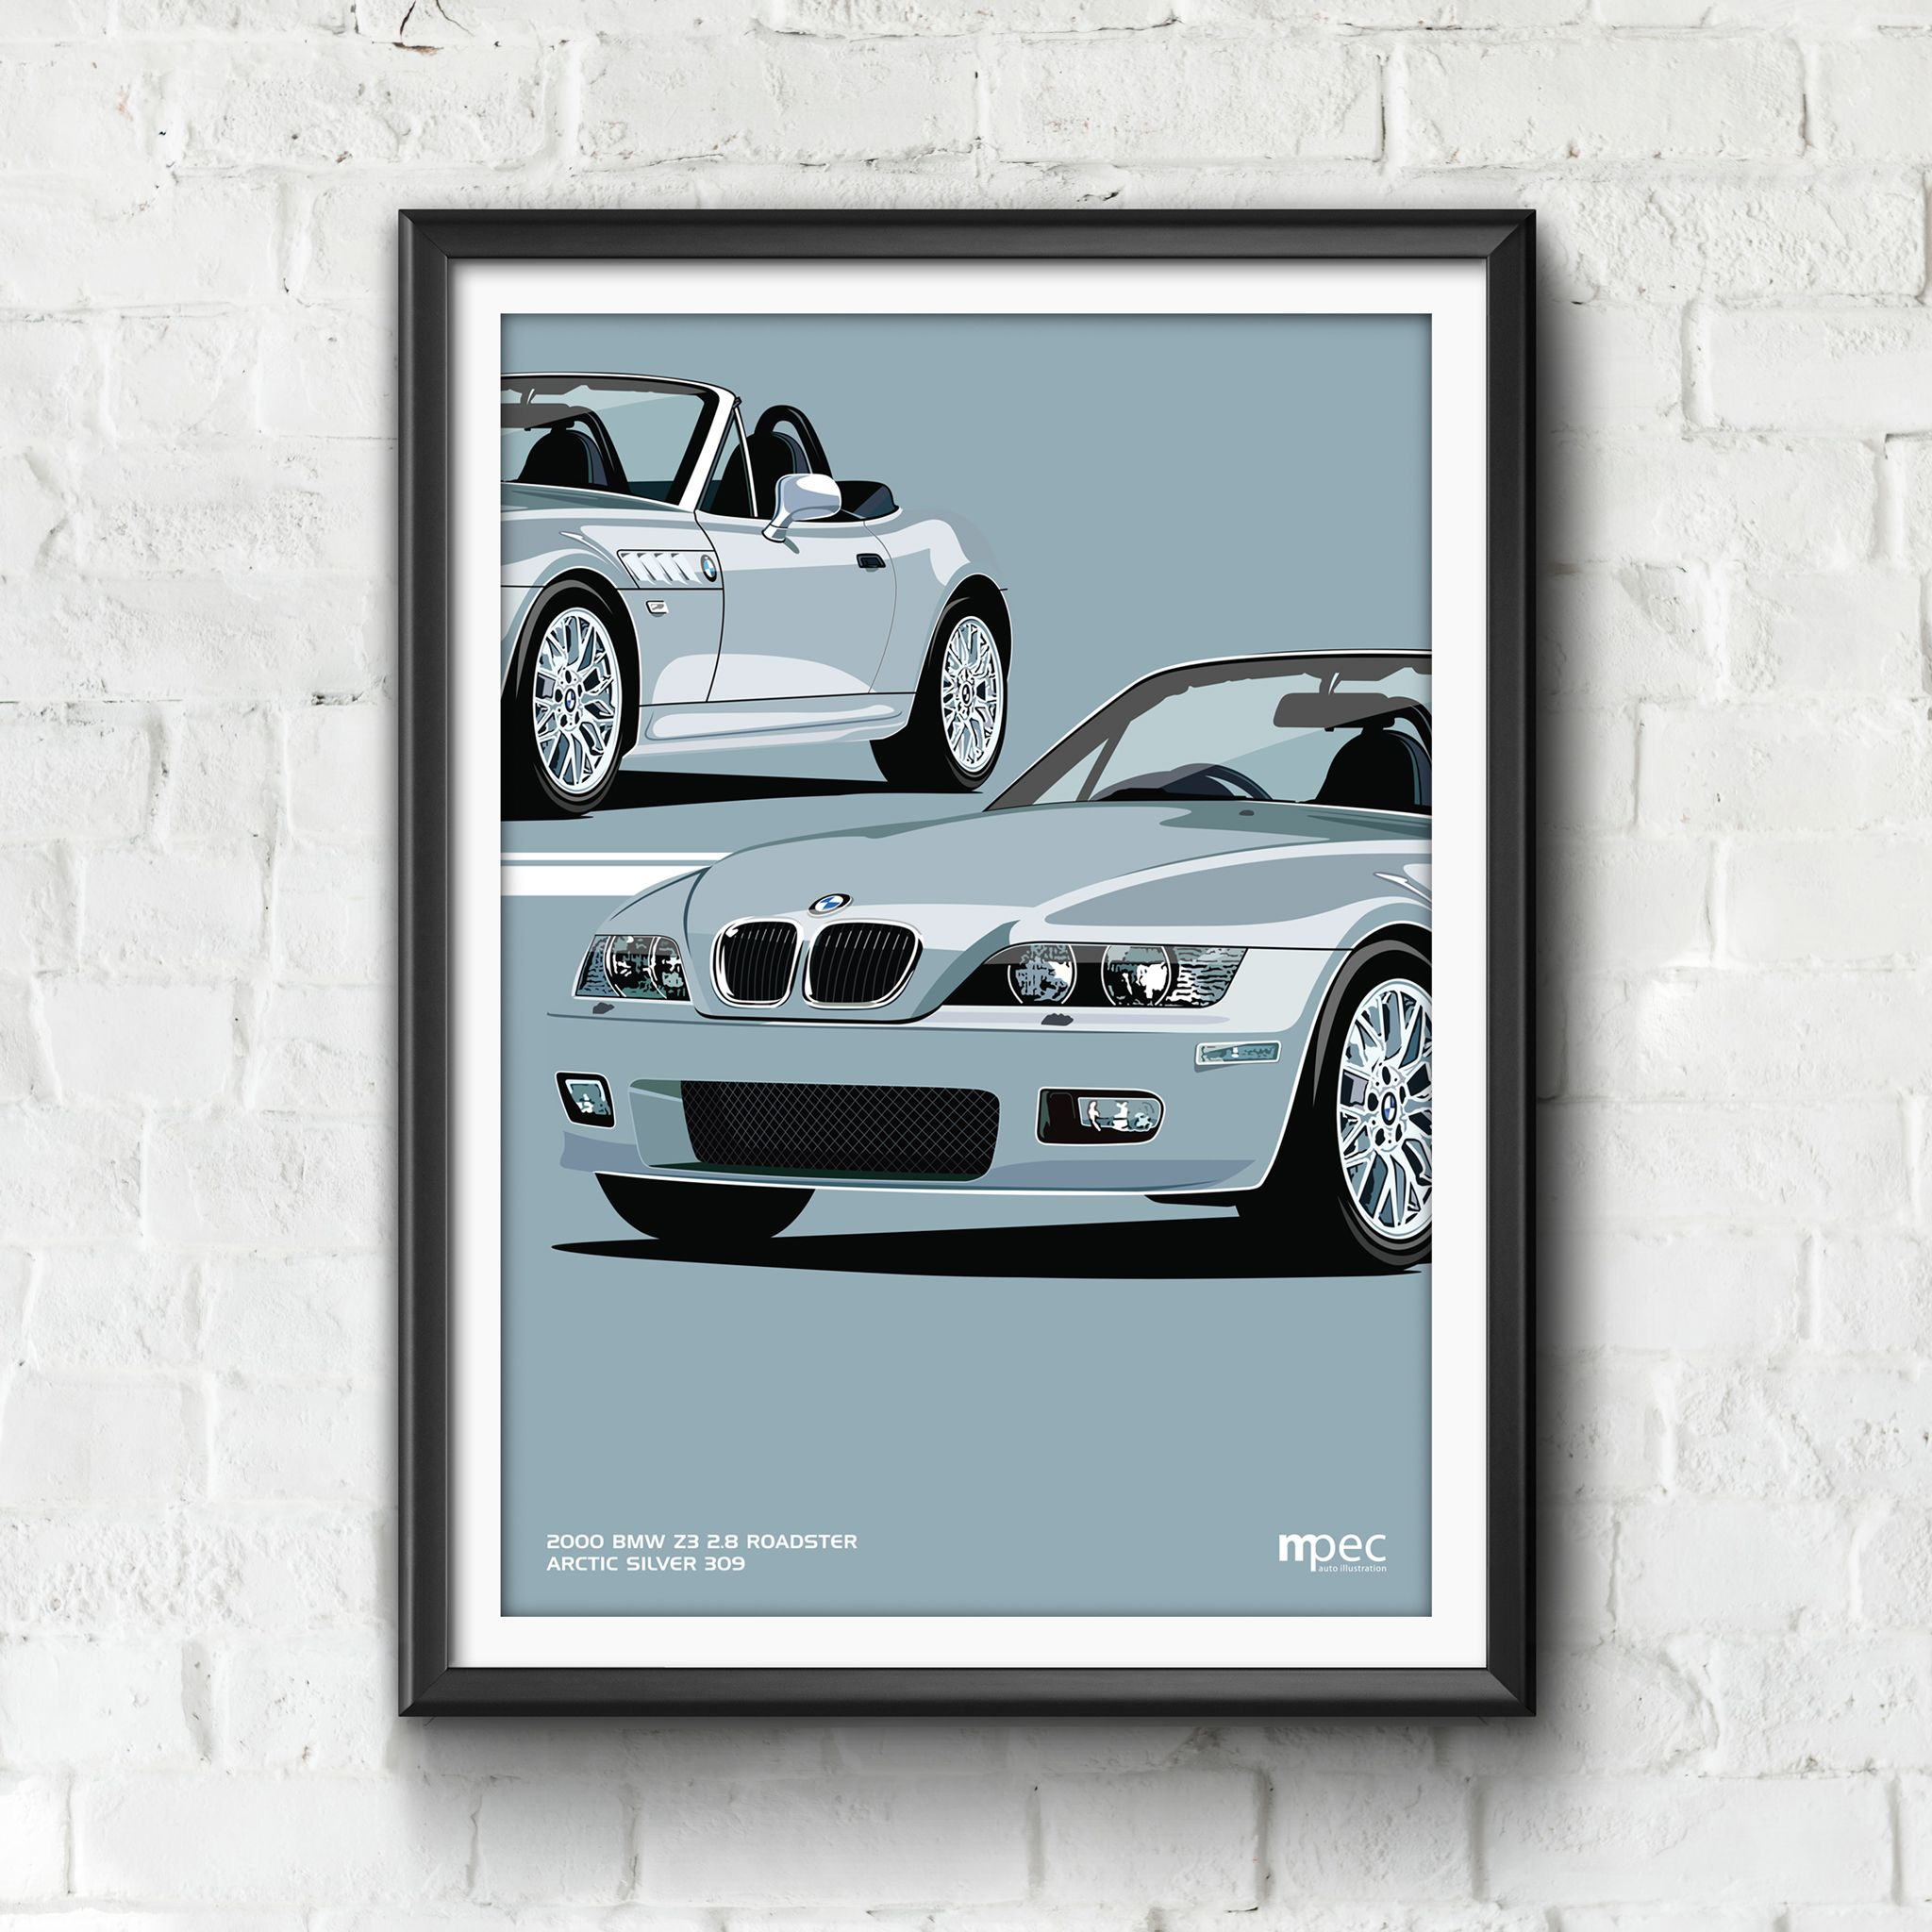 Print Of 2000 Bmw Z3 2 8 Roadster In Arctic Silver 309 Double Sale Poster Bmw Z3 Bmw